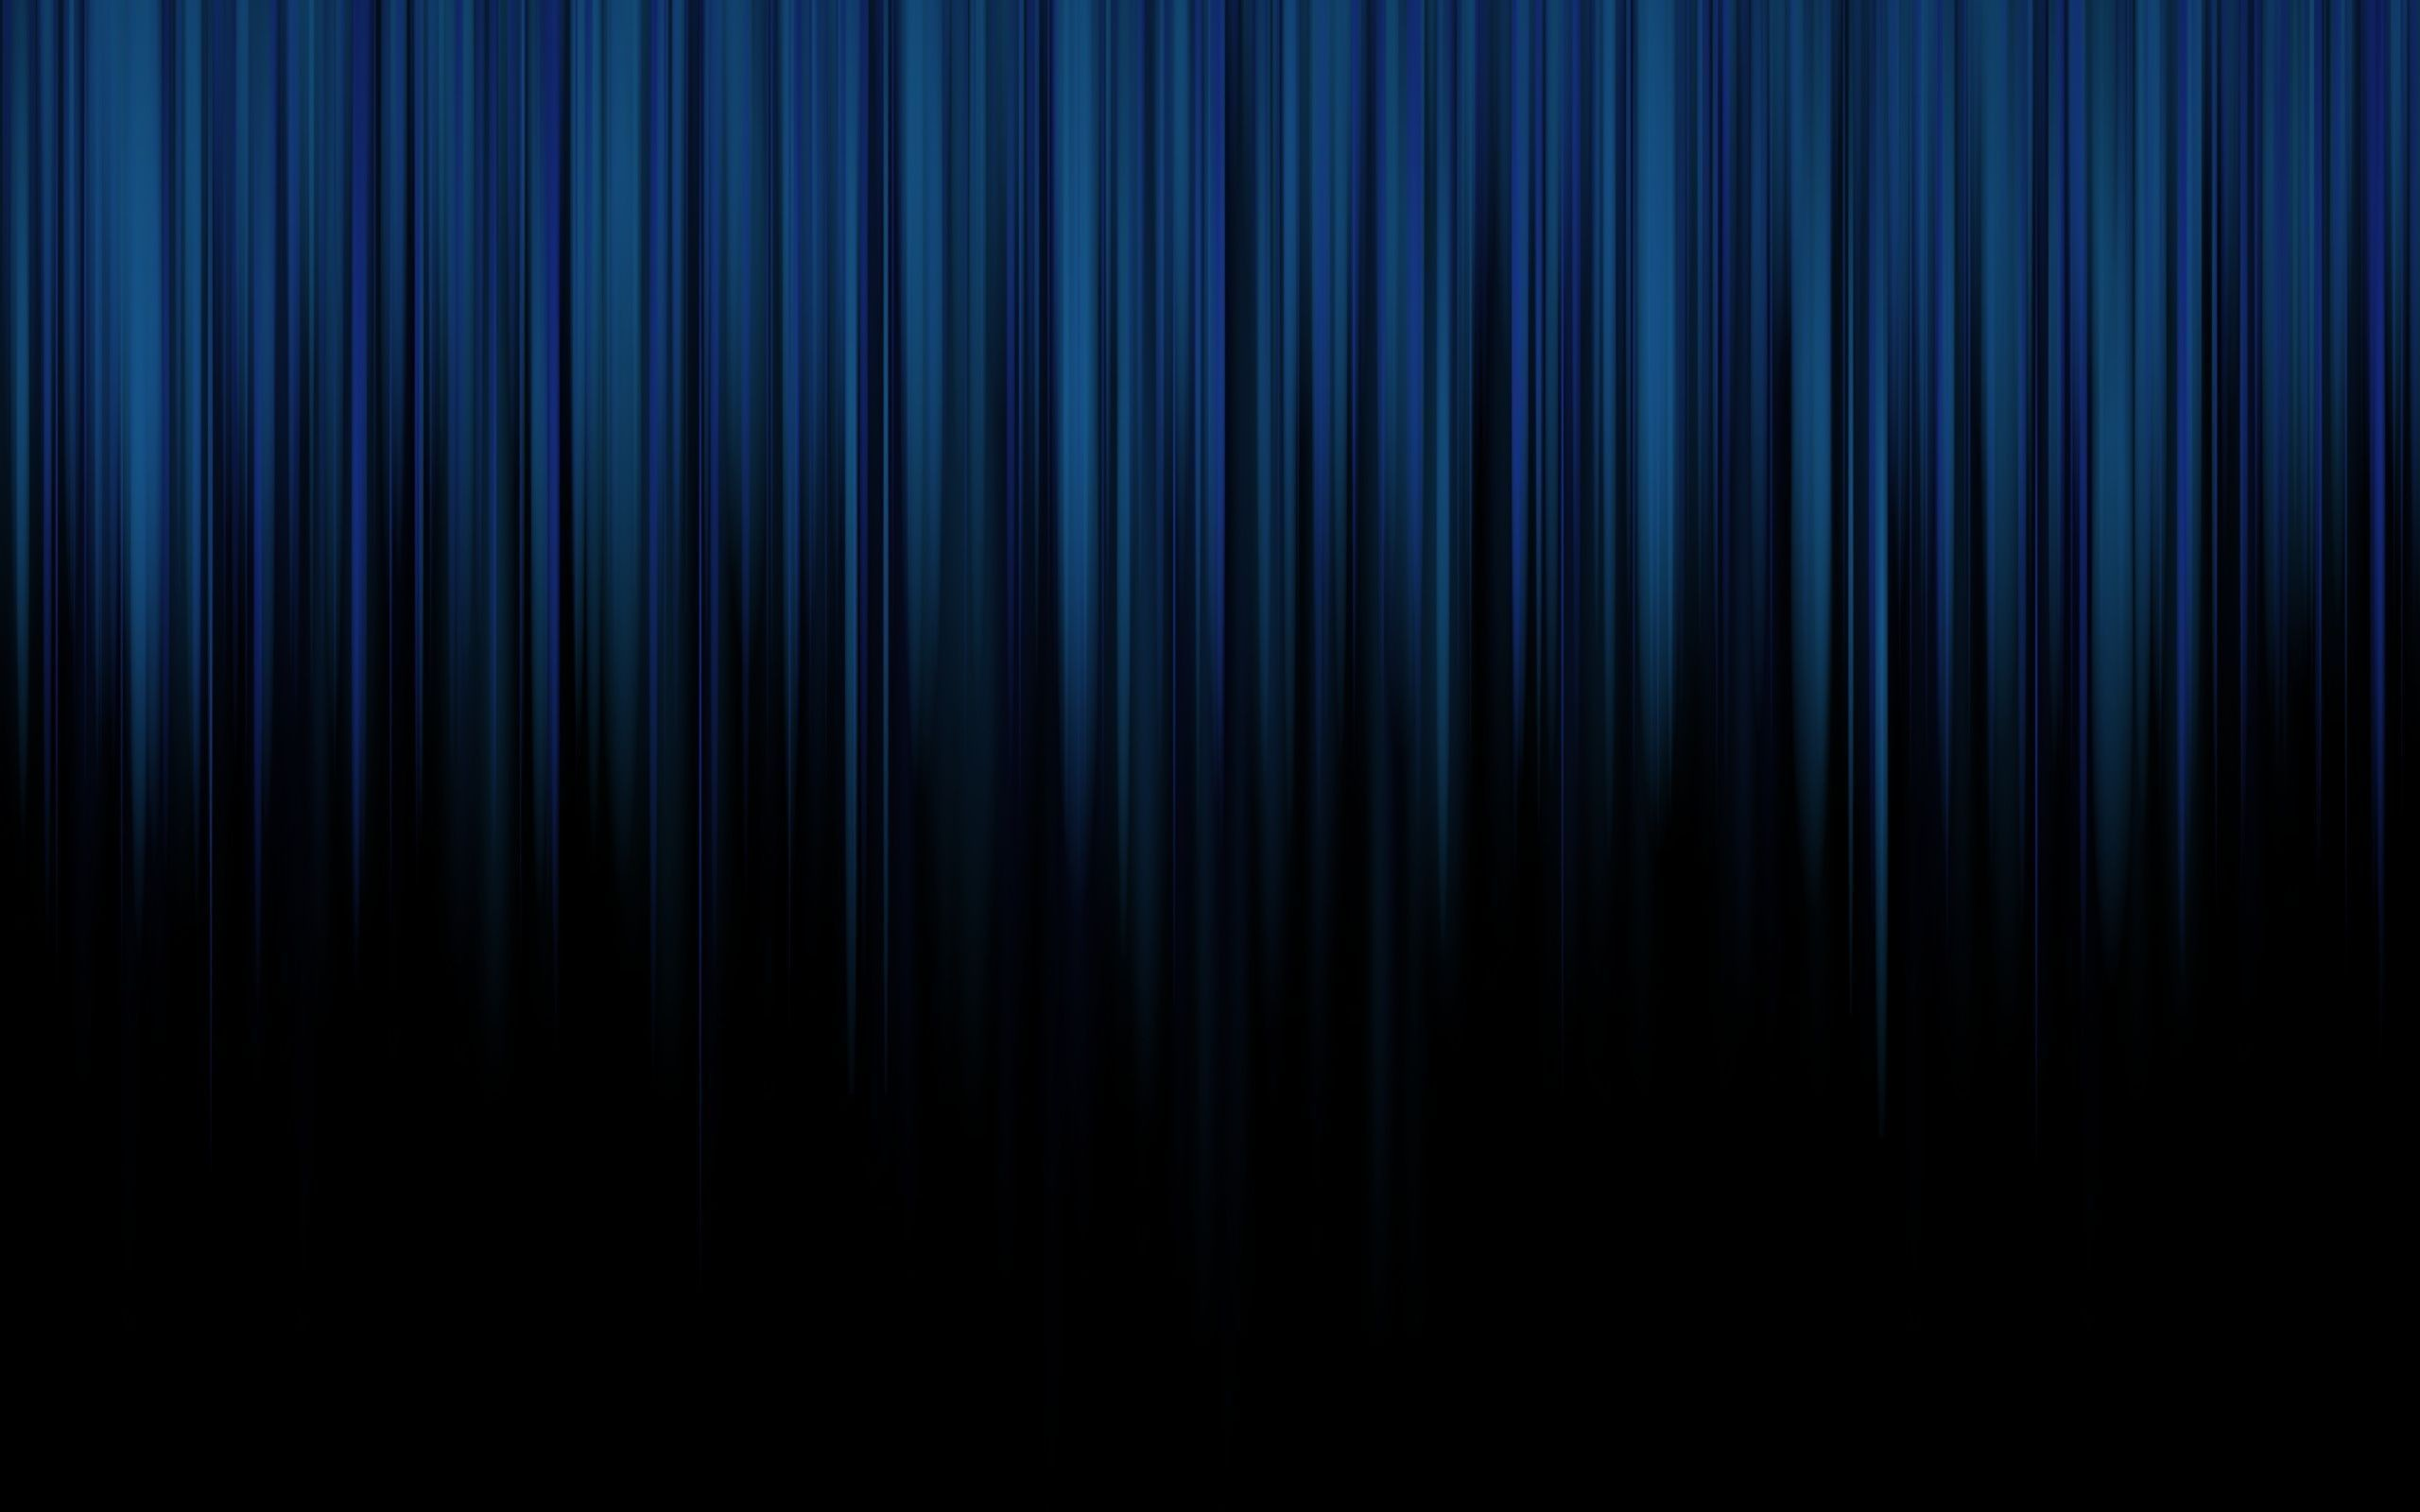 Black And Blue Backgrounds Wallpaper